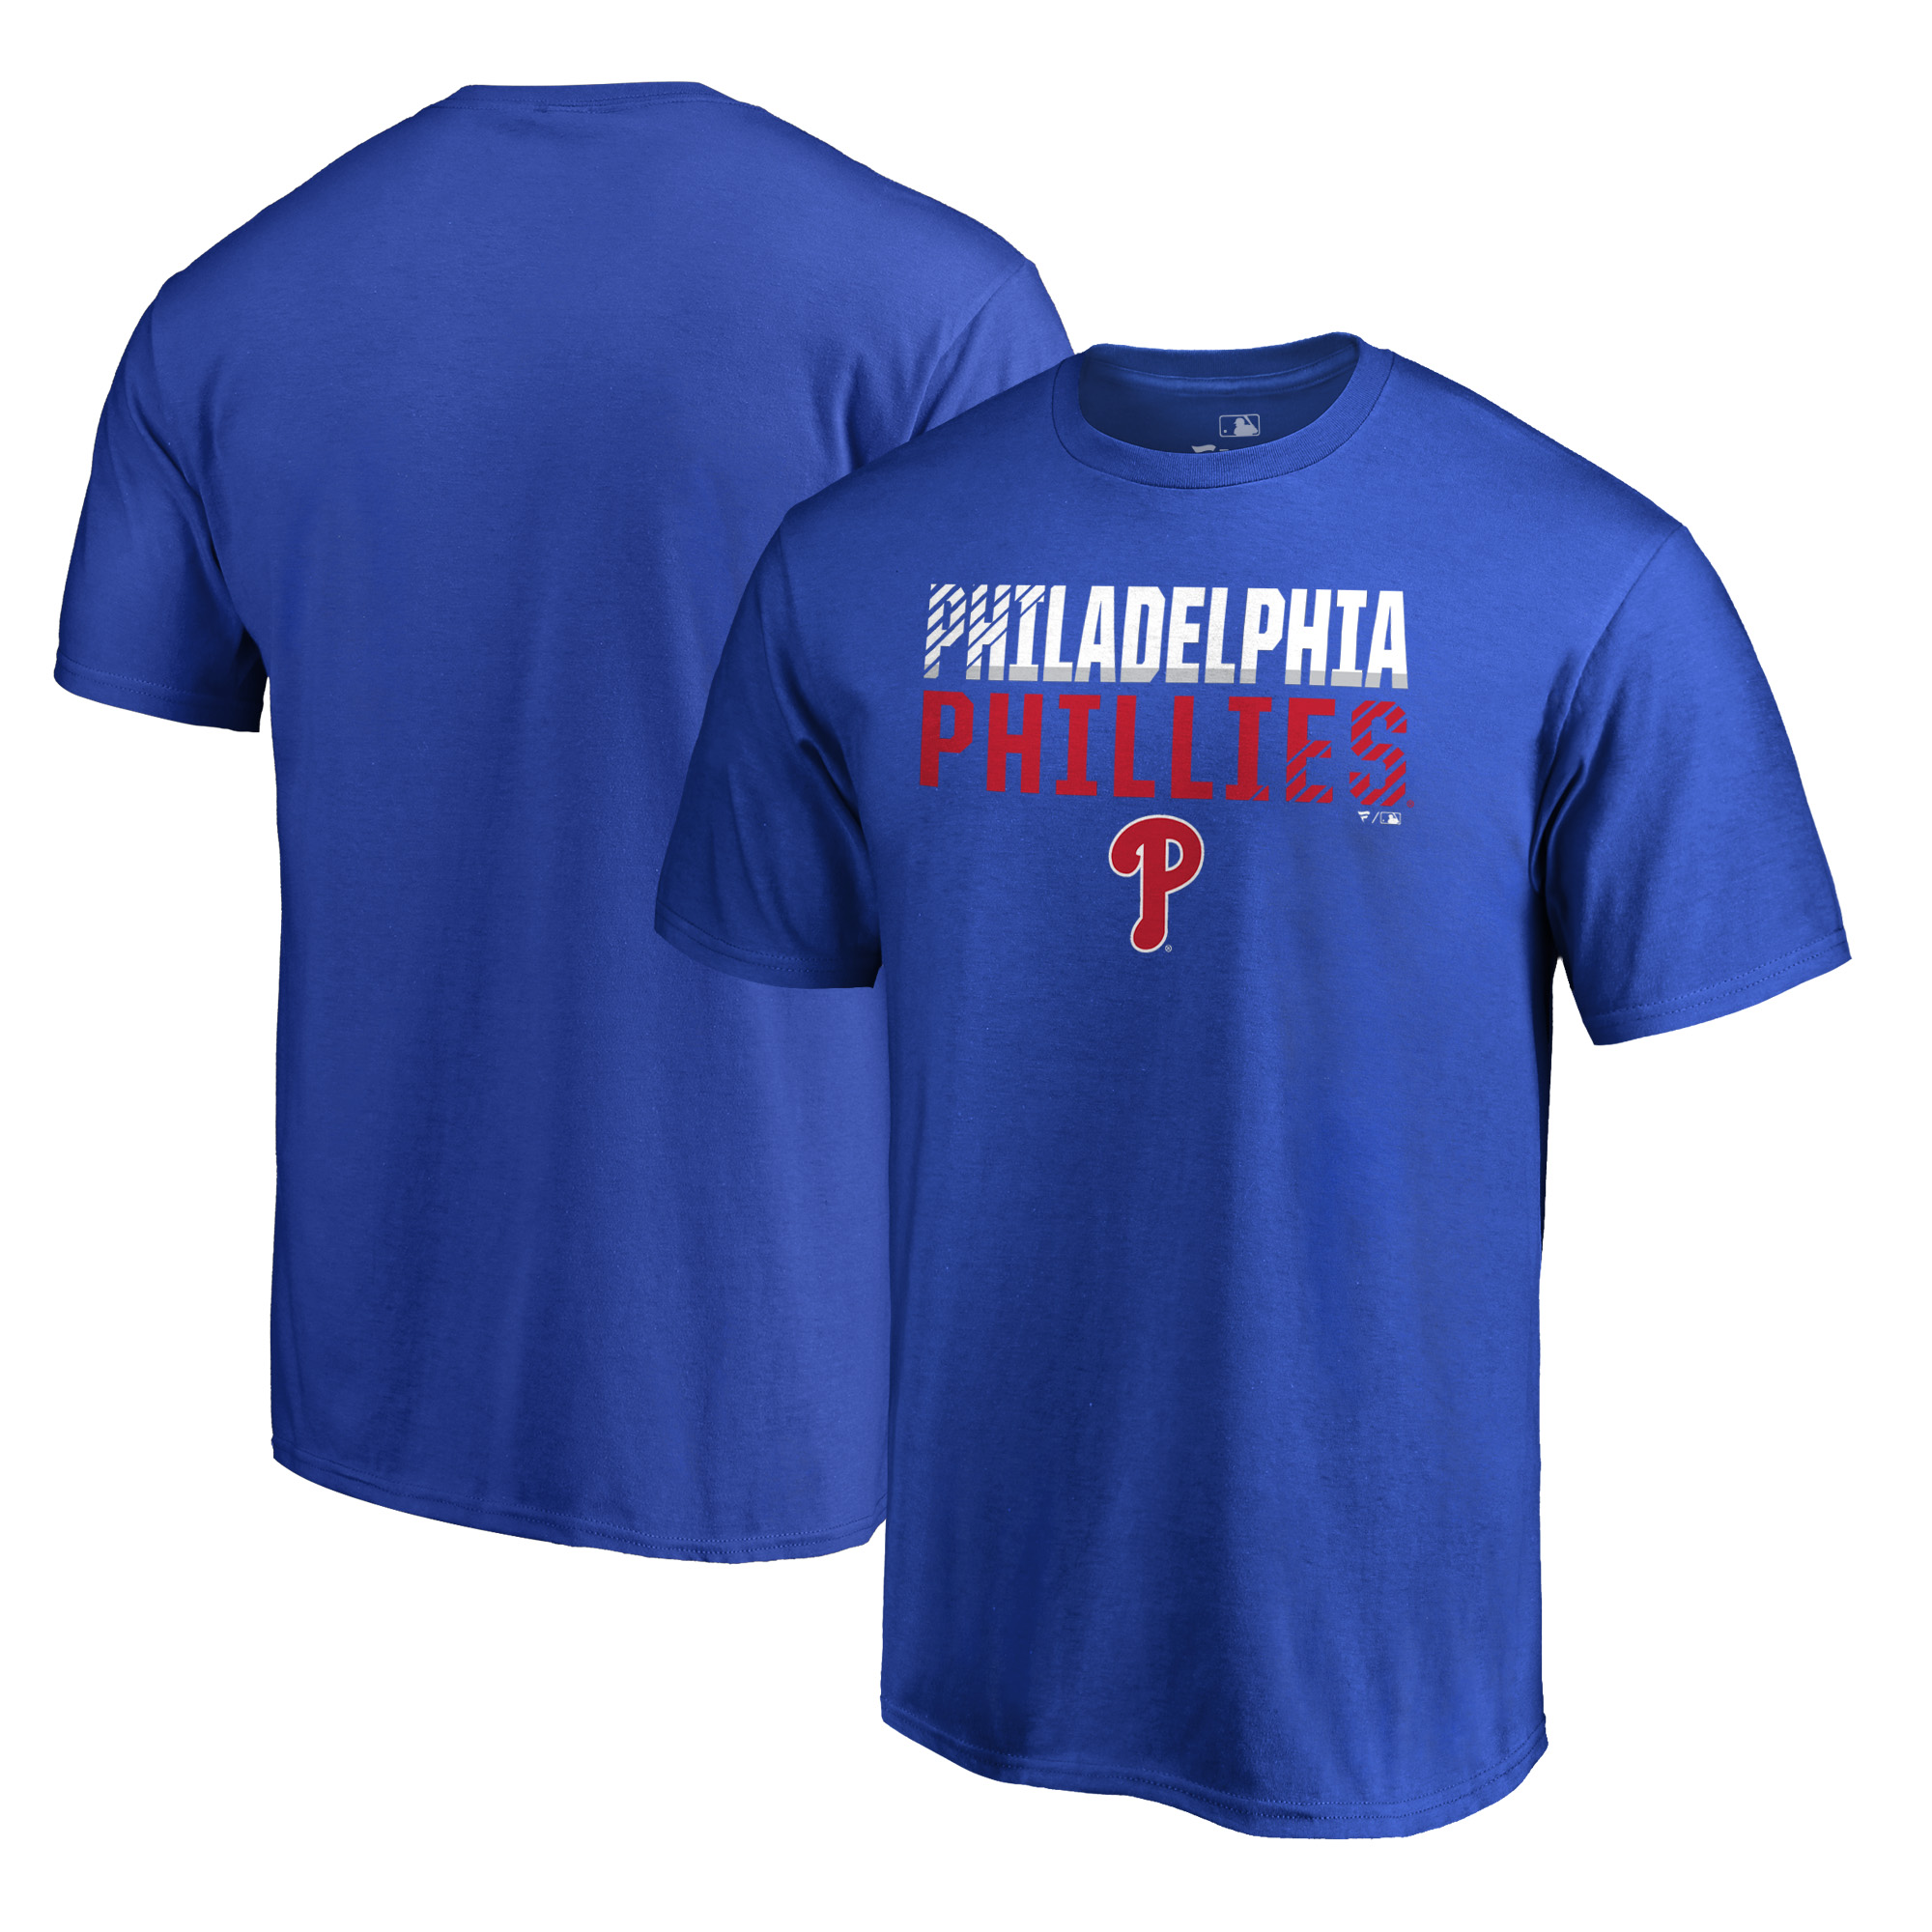 Philadelphia Phillies Fanatics Branded Team Fade Out T-Shirt - Royal